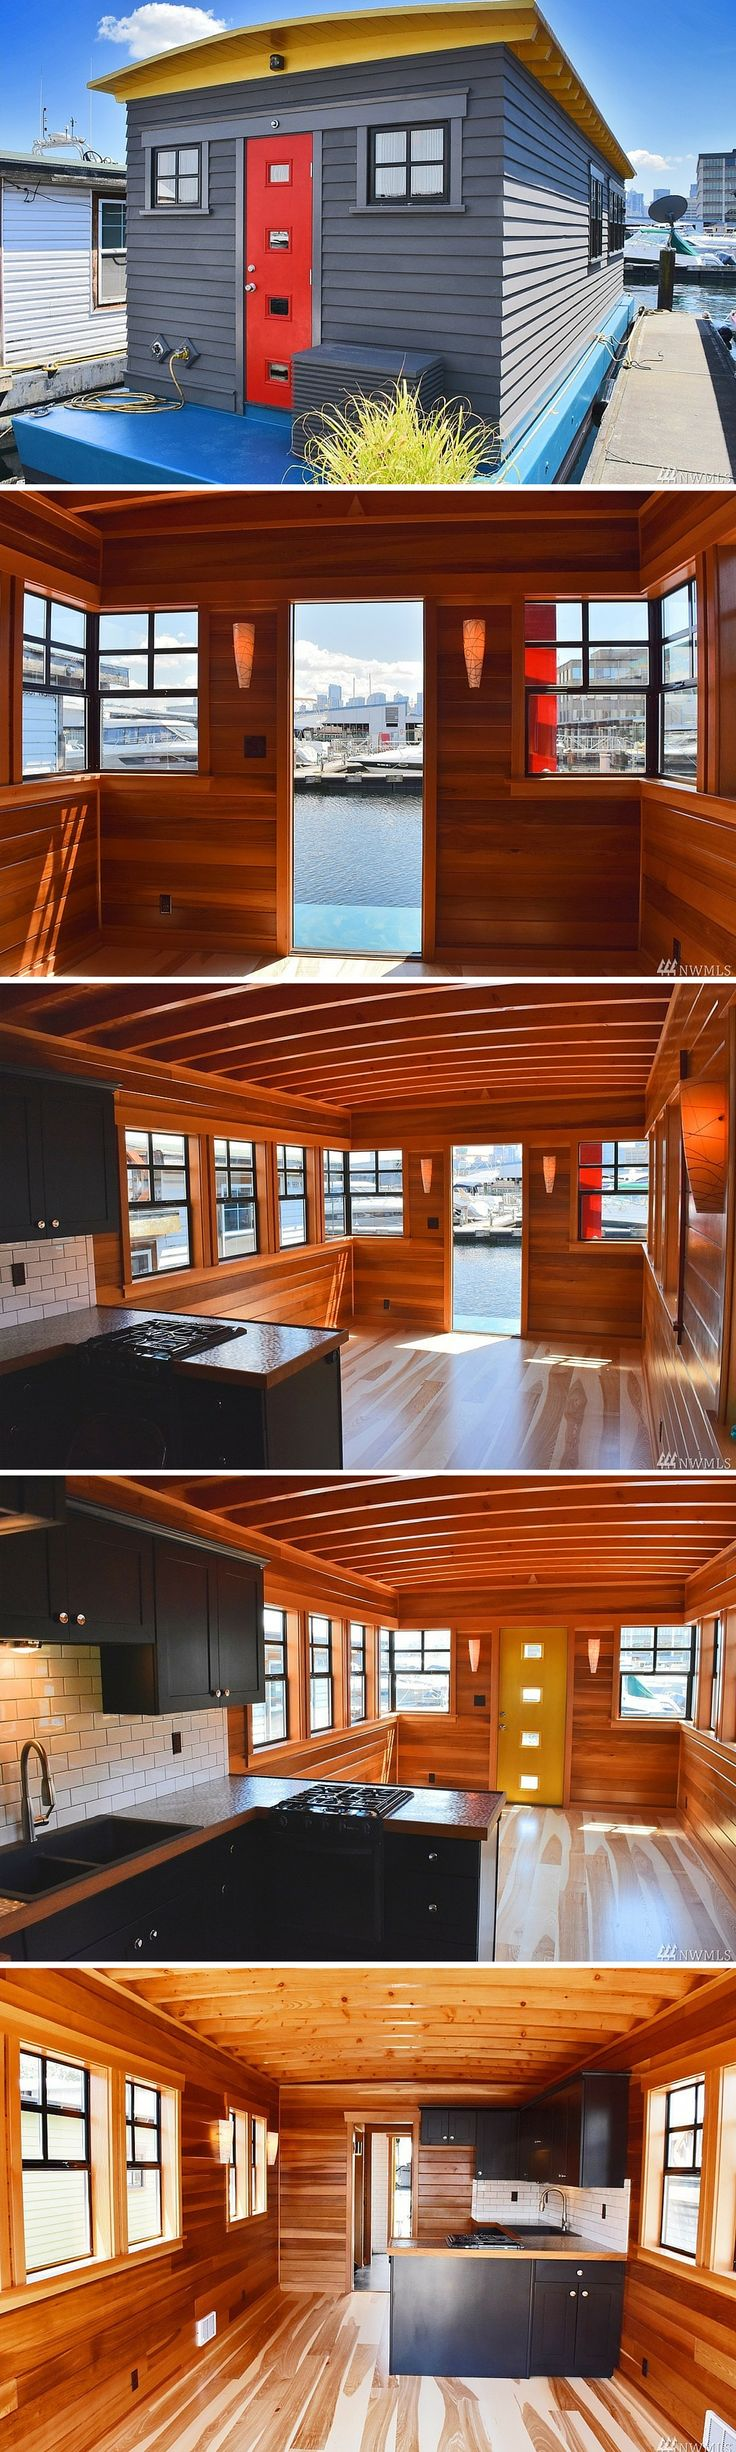 It's About Time: a 400 sq ft houseboat in Seattle